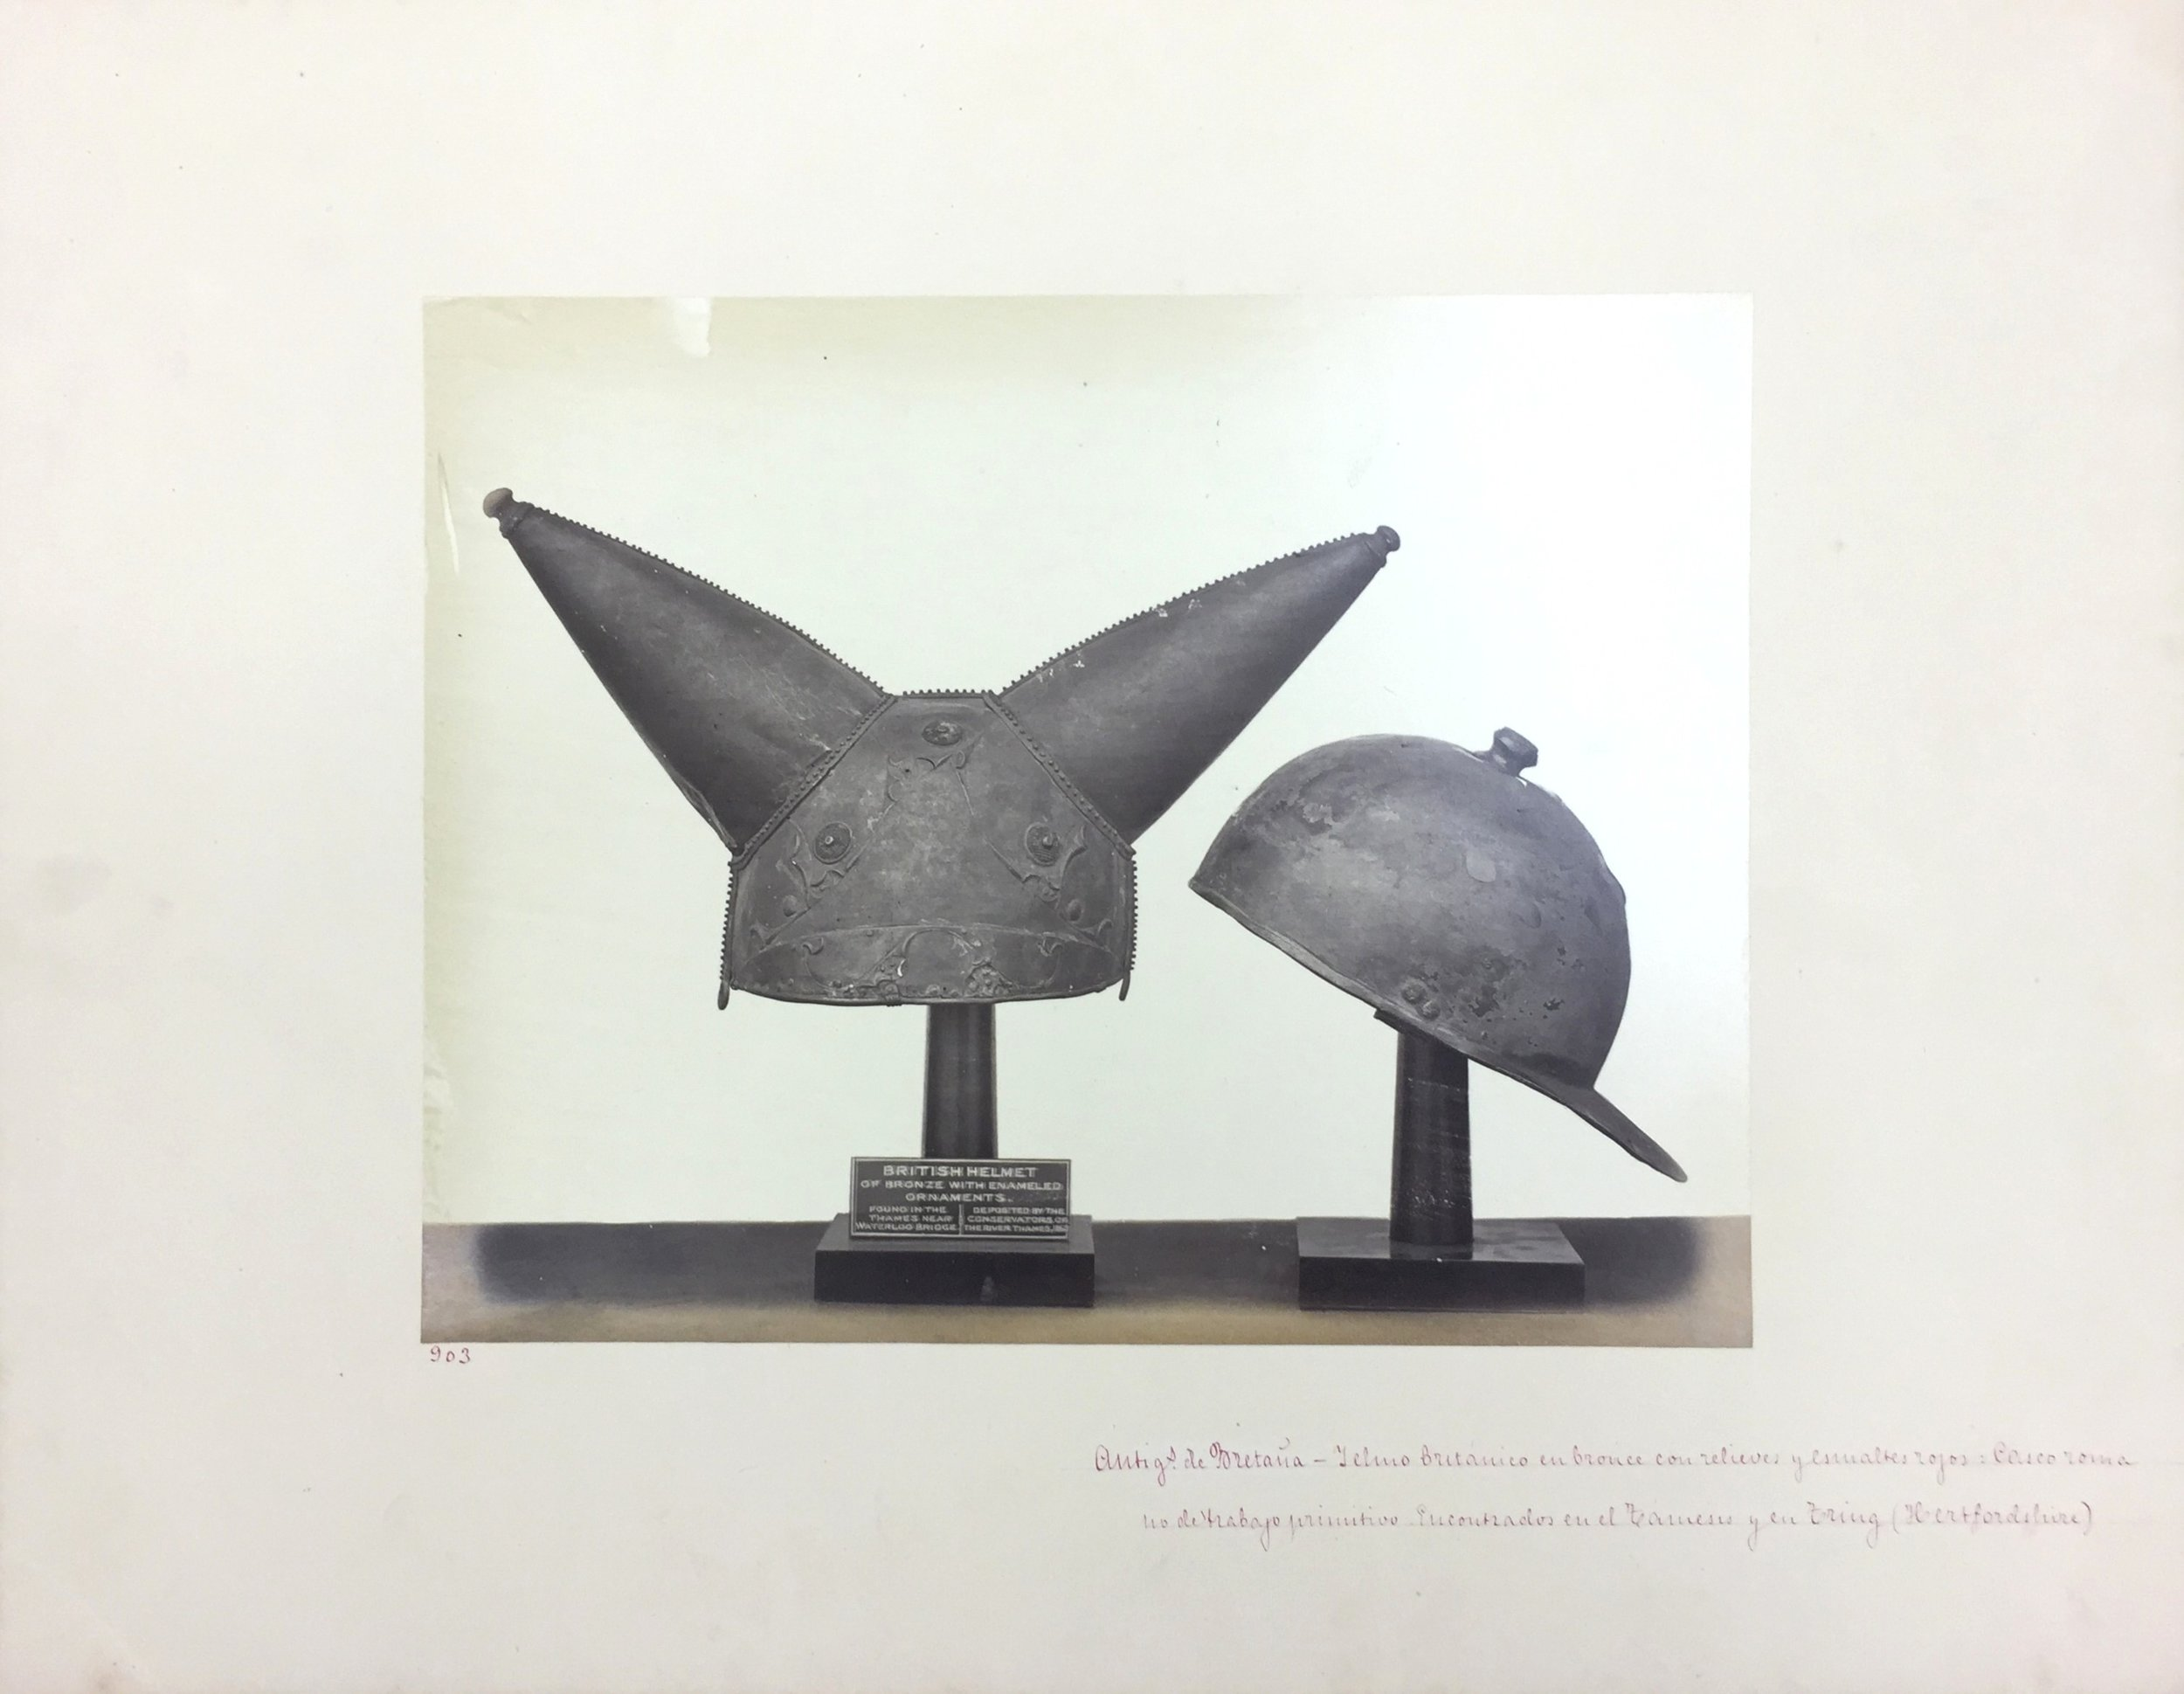 British Helmet of Bronze, No. 903, Antiquities of Britain, British Museum , 1872, Photographed by Stephen Thompson, Vintage albumen print, Photograph: 27.5 x 21.5 cm, Mount board: 35.5 x 45.5 cm